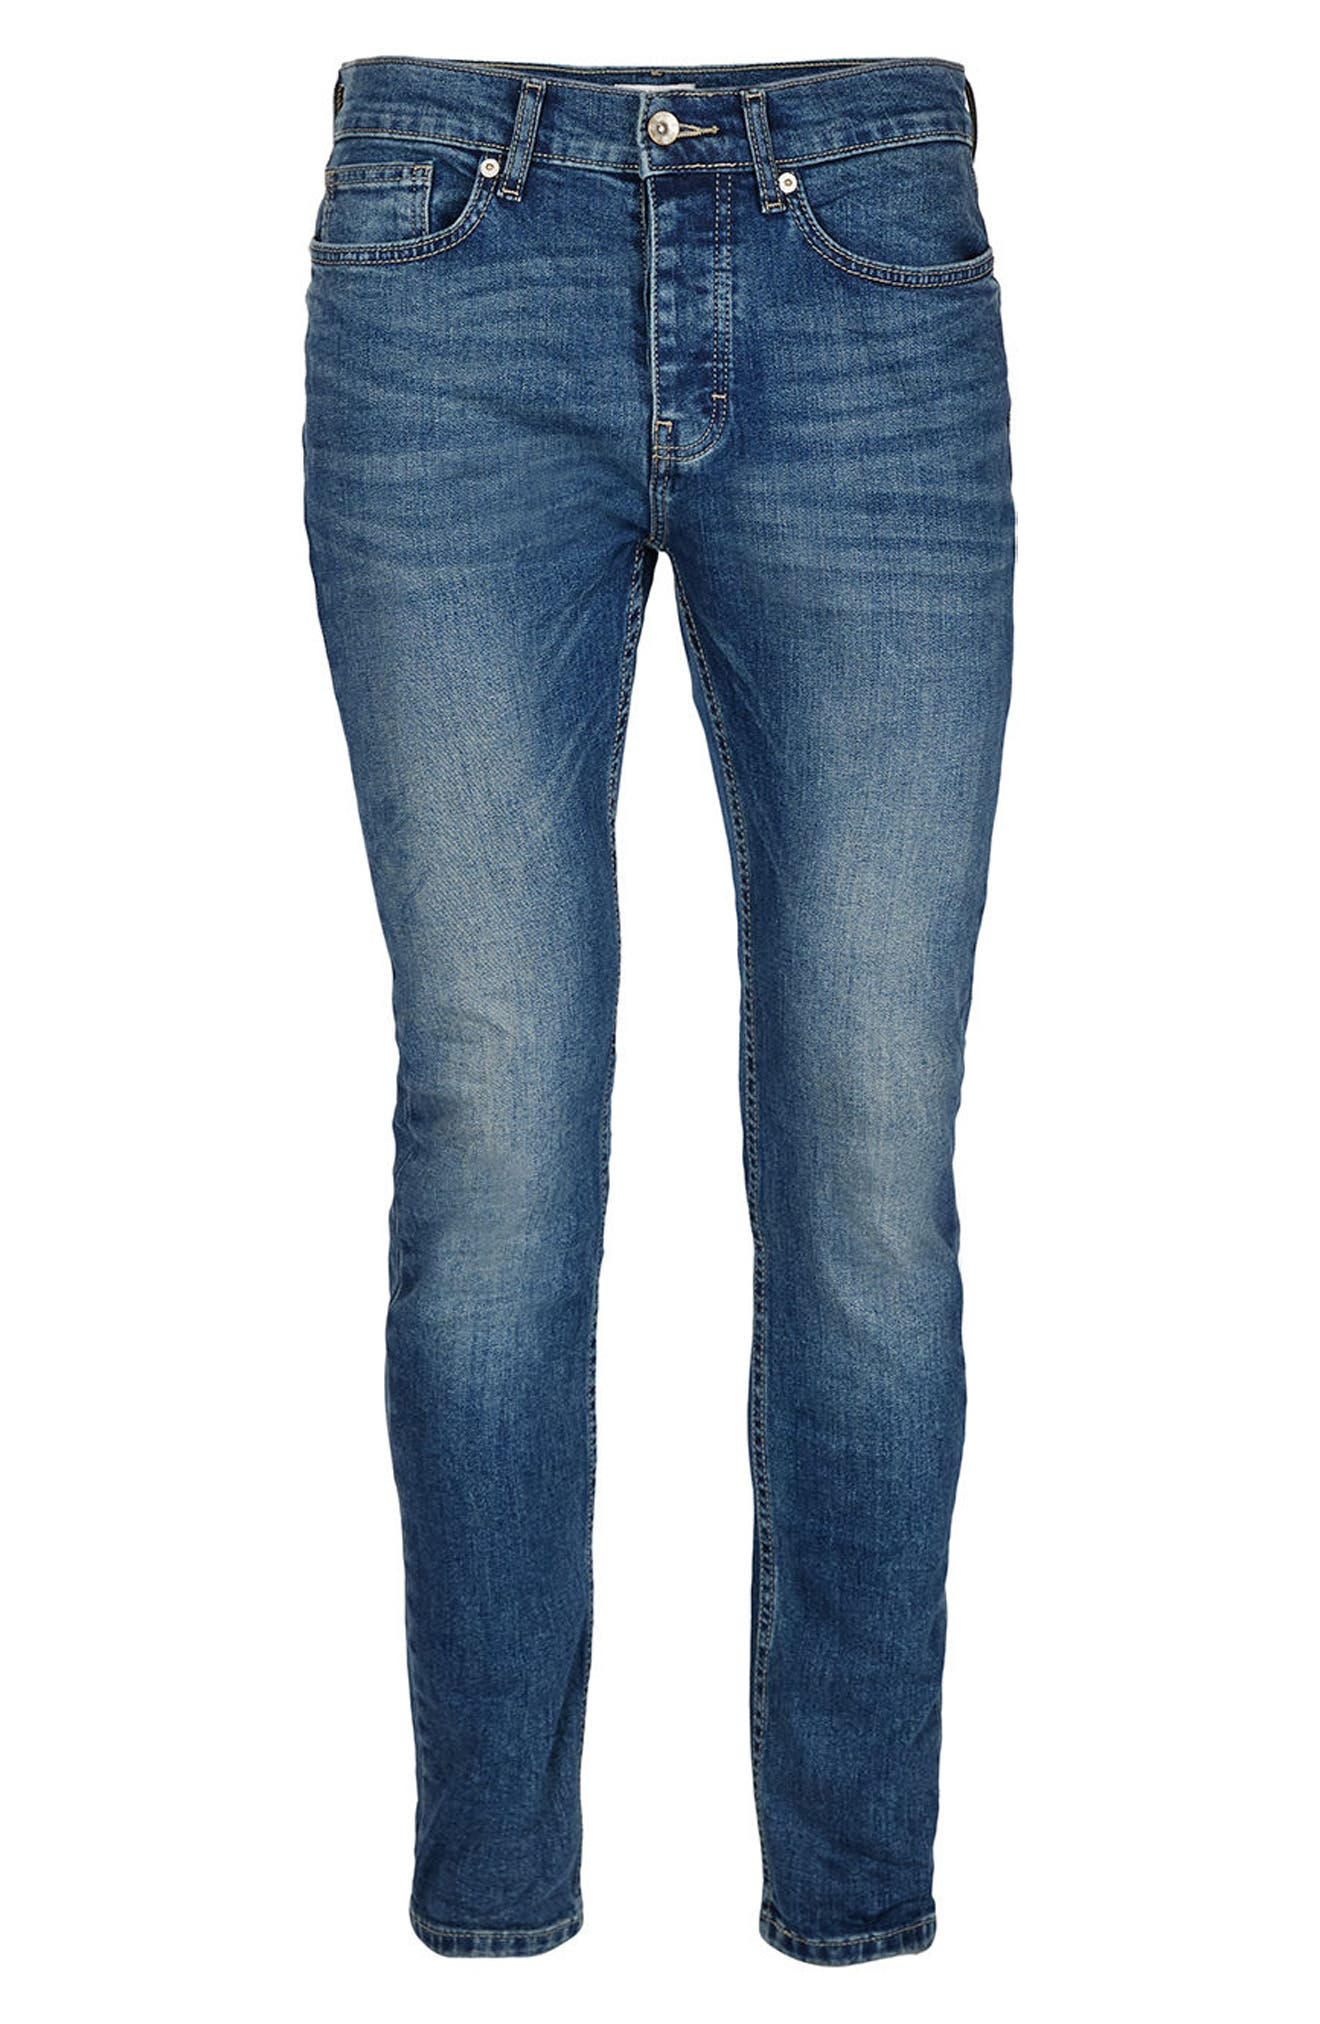 Stretch Skinny Jeans,                             Alternate thumbnail 4, color,                             Mid Blue